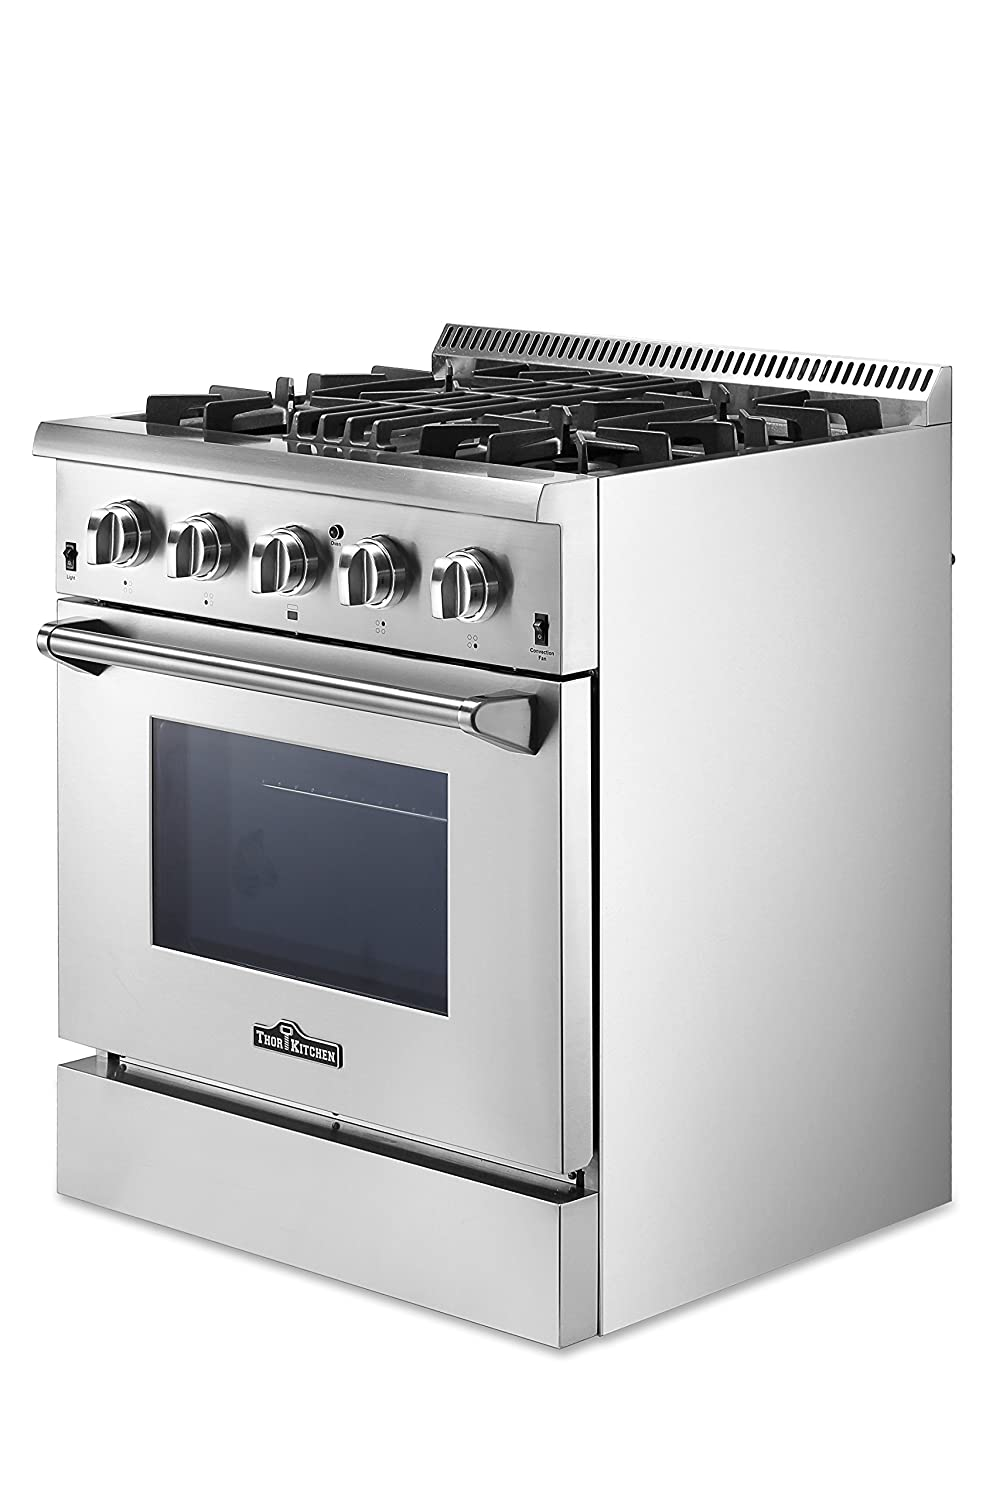 amazoncom thorkitchen hrd3088u 30 freestanding professional style dual fuel range with 42 cu ft oven 4 burners convection fan stainless steel - Thor Kitchen